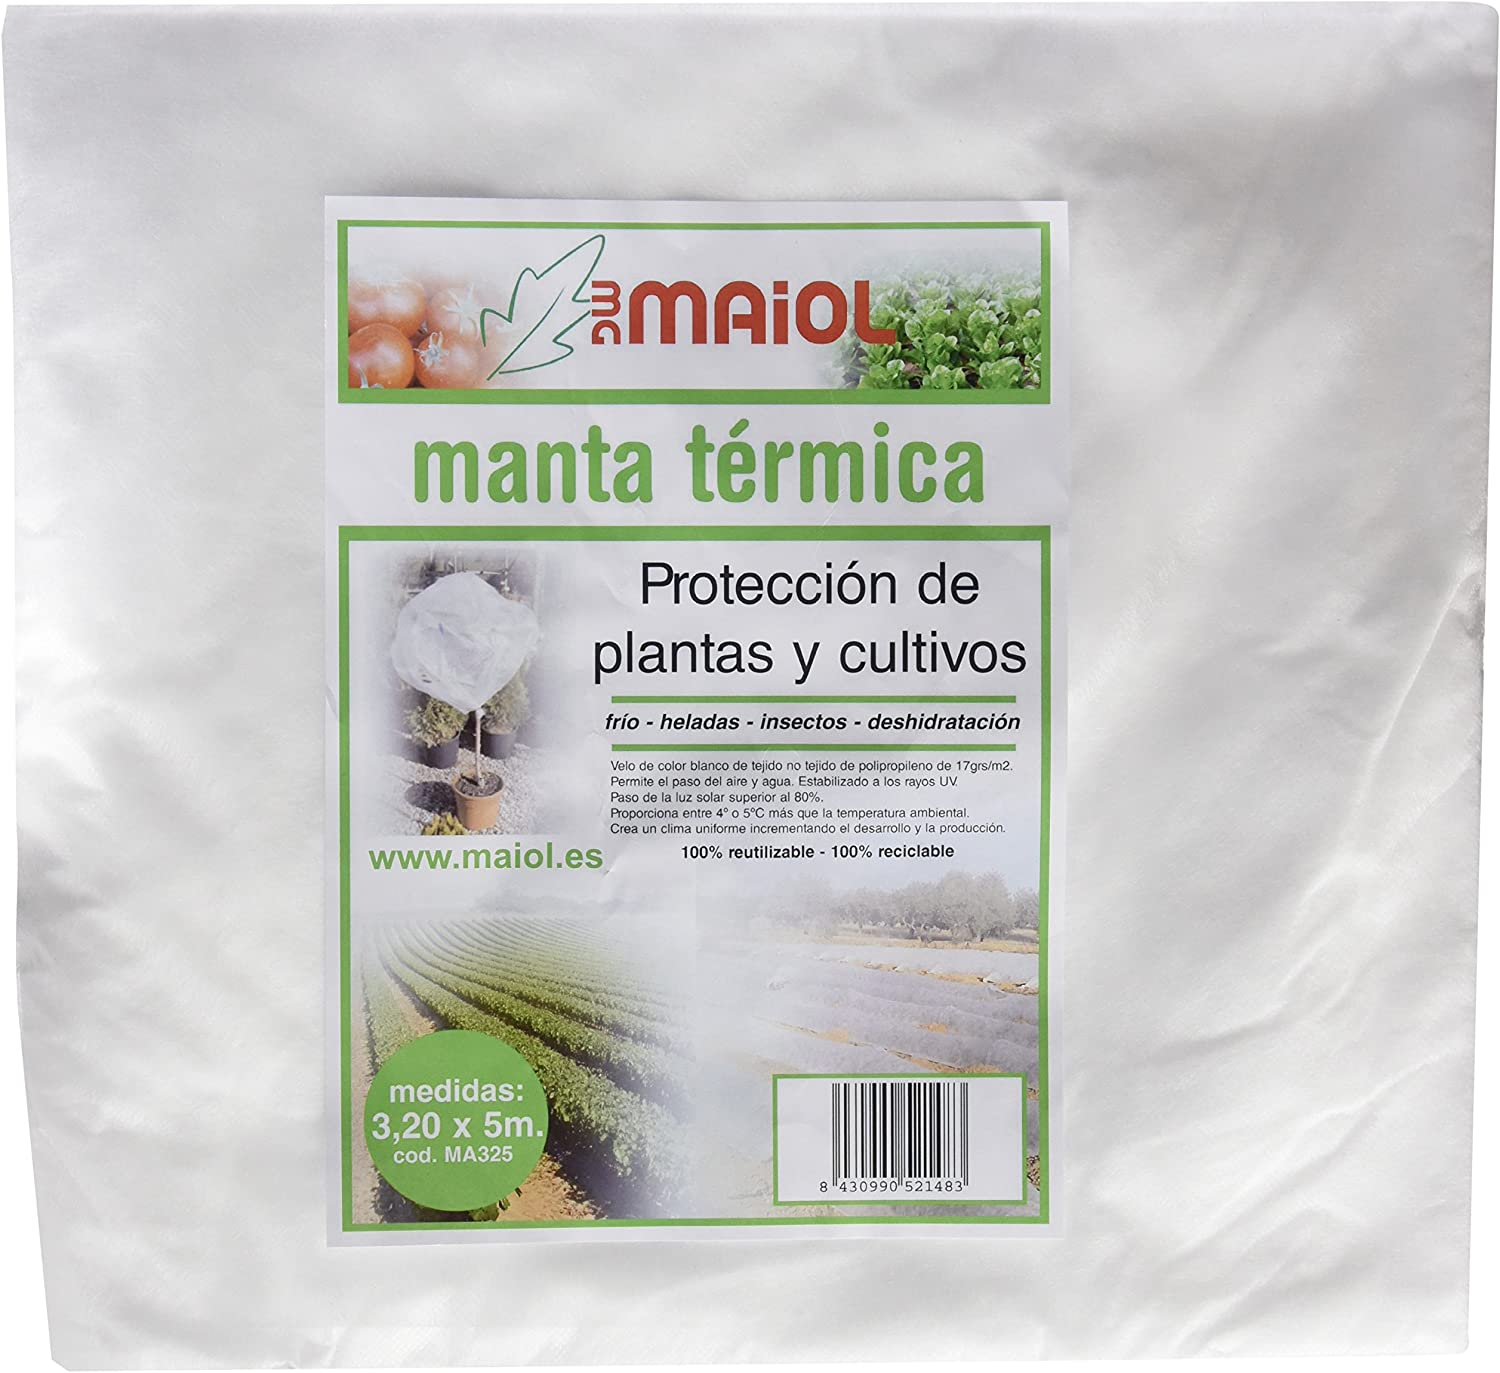 Maiol MA325 - Manta térmica 3,20 x 5 m.: Amazon.es: Jardín